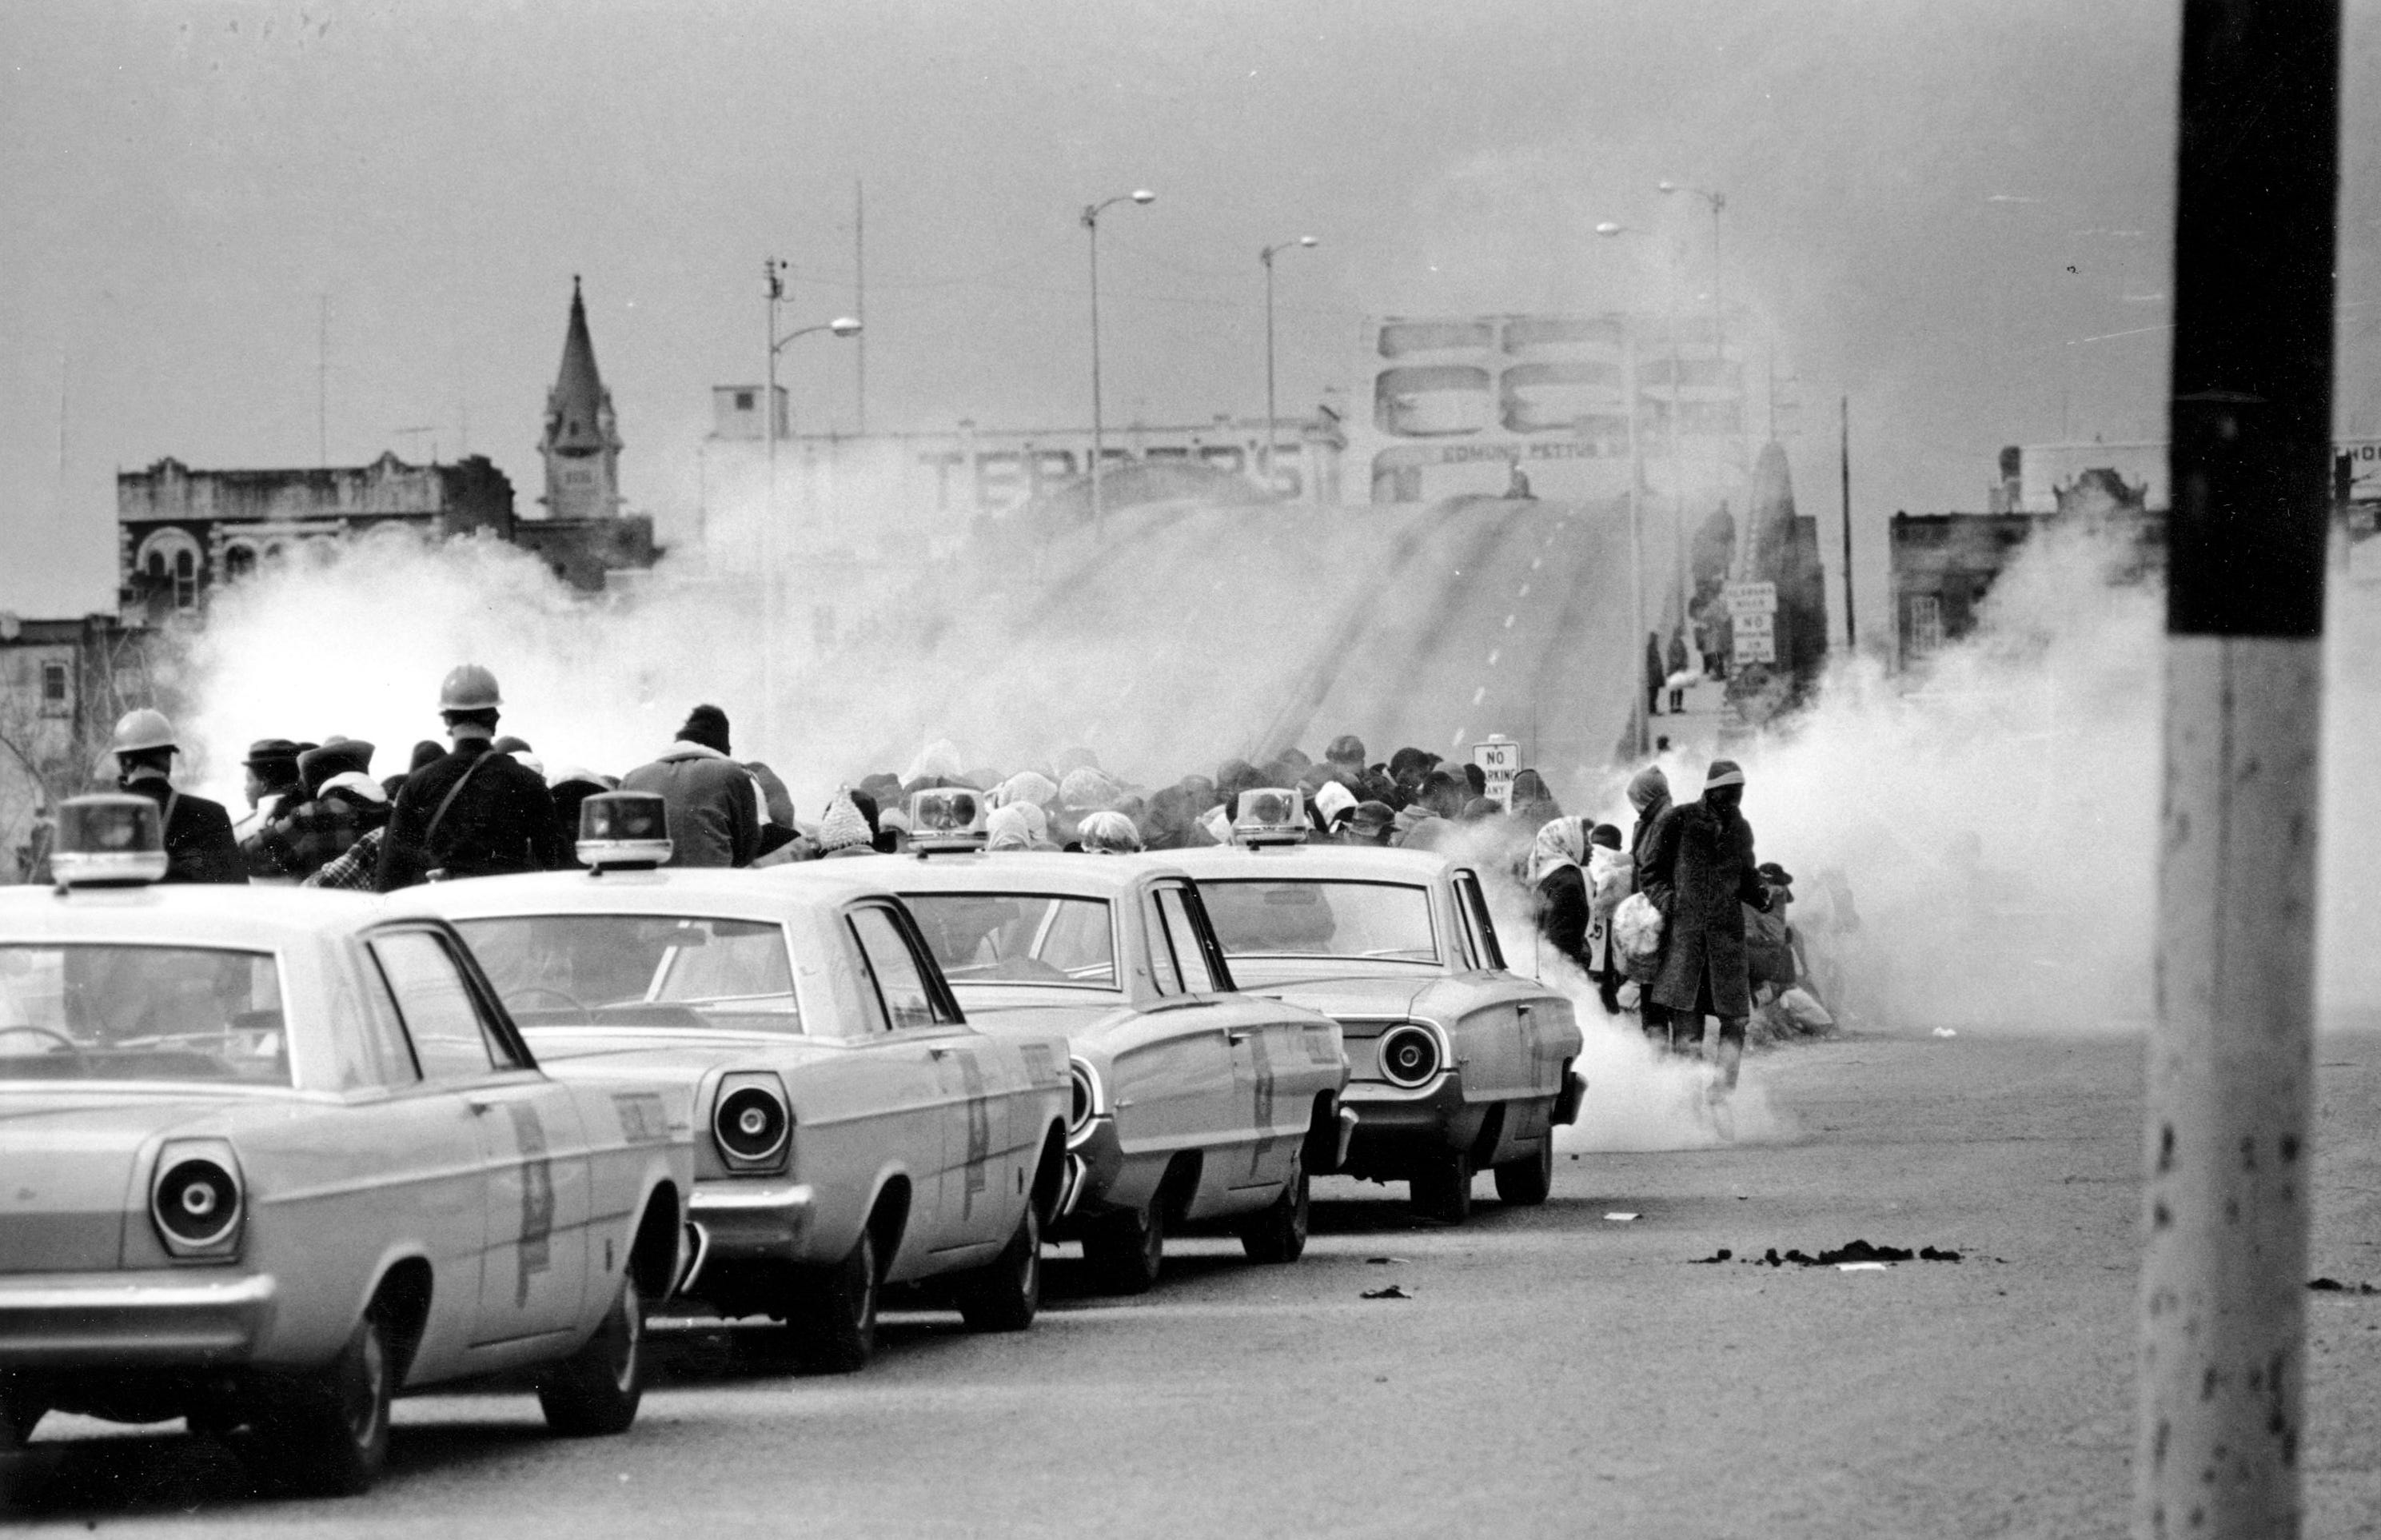 """In this March 7, 1965 file photo, clouds of tear gas fill the air as state troopers, ordered by Gov. George Wallace, break up a demonstration march in Selma, Ala., on what became known as """"Bloody Sunday."""""""